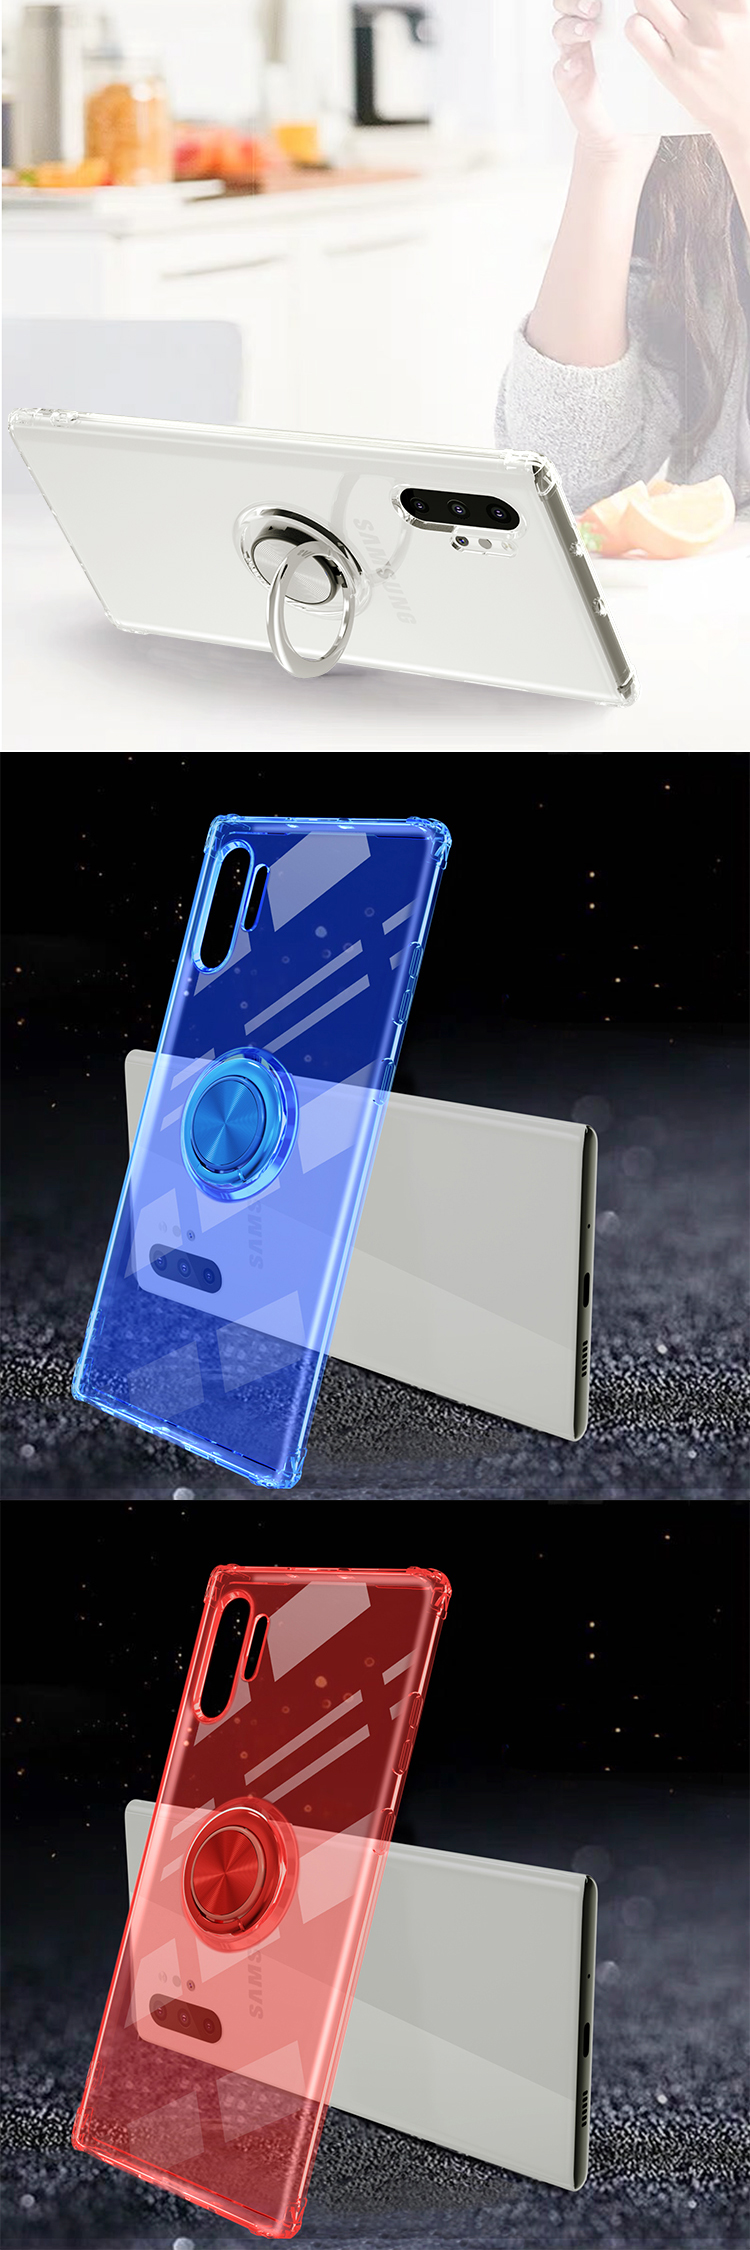 Transparent TPU Case Soft Phone Covers For Samsung Galaxy Note 10 Pro / Note 10 plus / Note 10 Cases